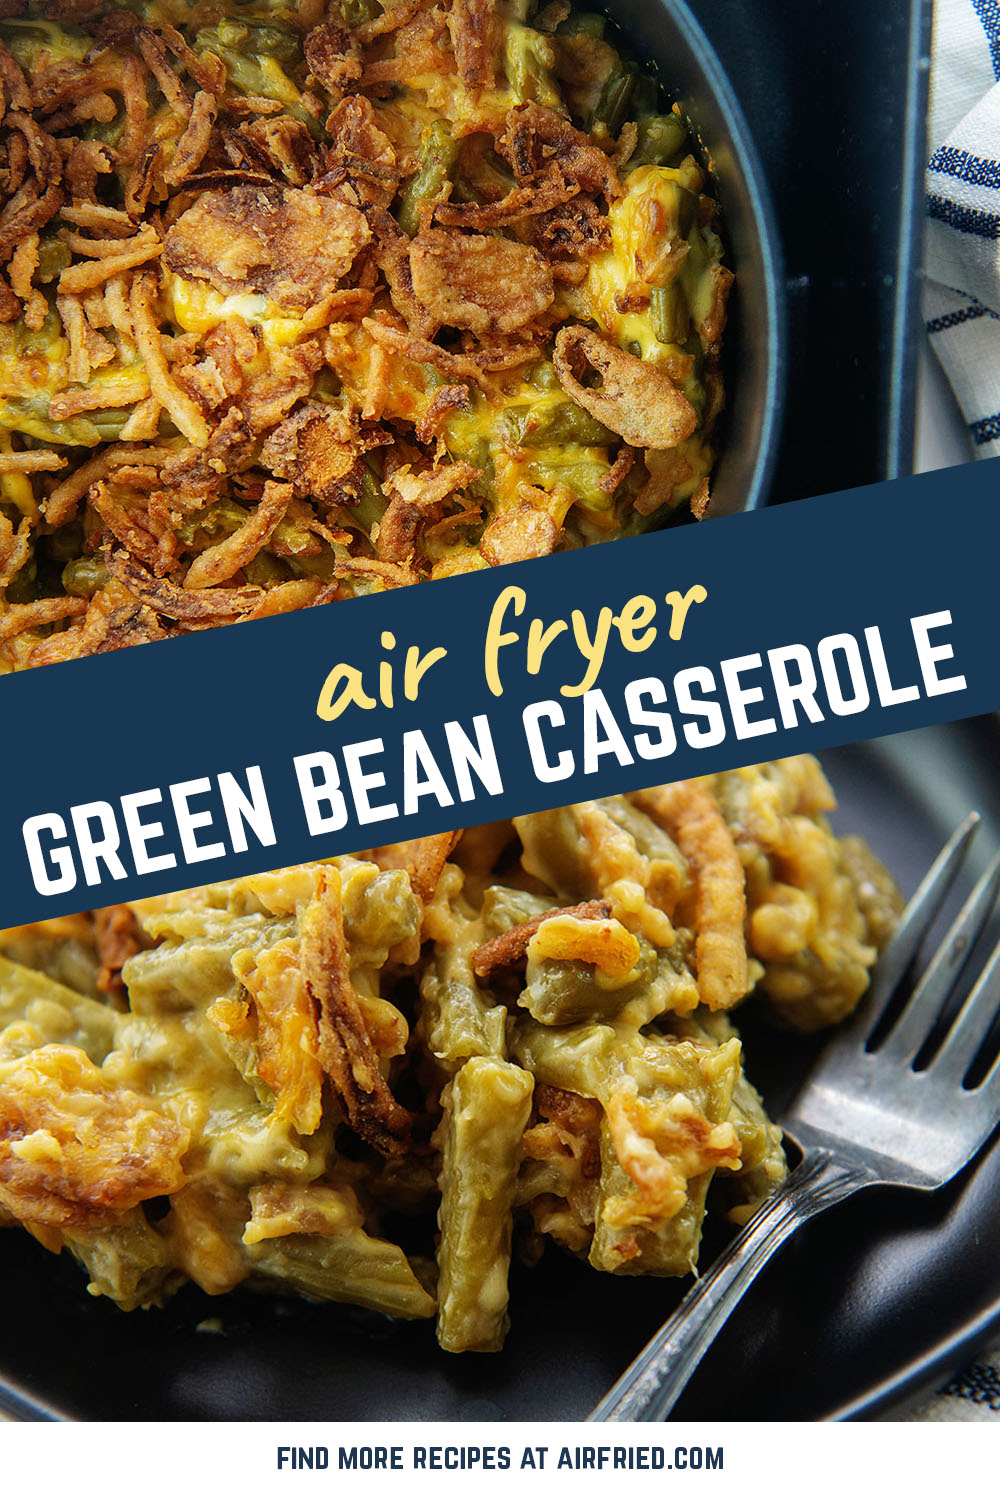 This green bean casserole just might be my new favorite side dish.  I have even eaten this as an entire meal!